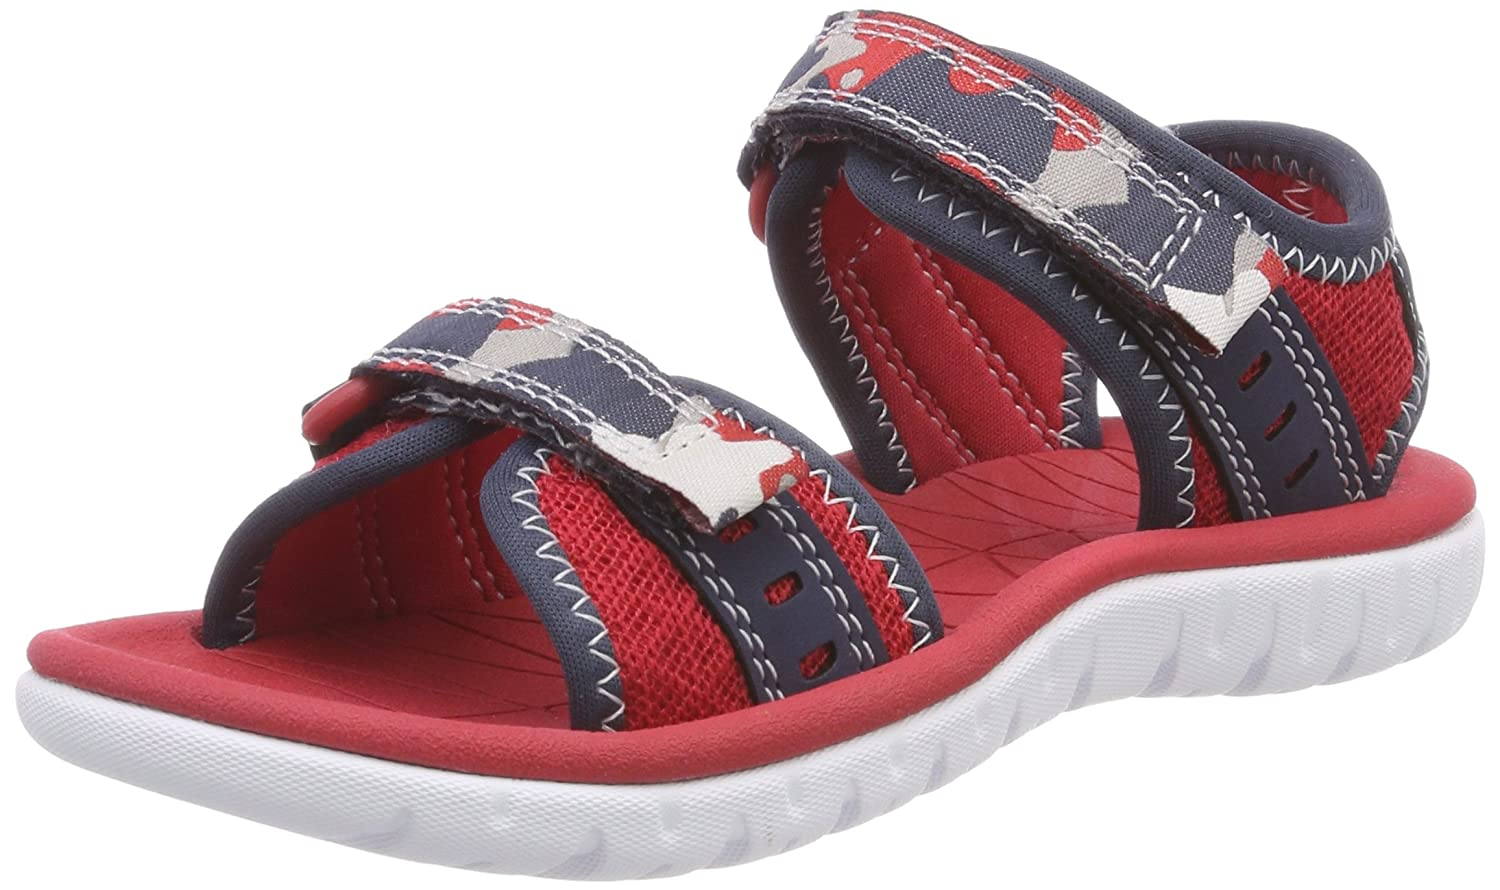 c24b0300120 Clarks Surfing Coast Textile Sandals in Blue Combi  Amazon.co.uk  Shoes    Bags